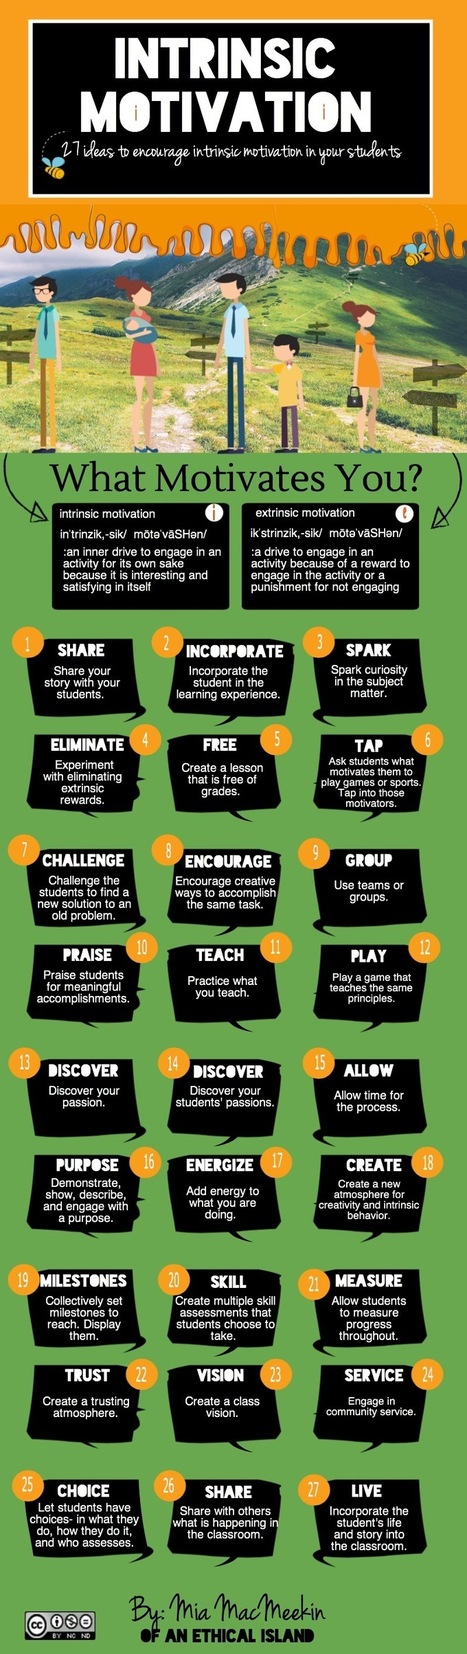 Intrinsic Motivation for the Classroom | Desenho de Educação | Scoop.it